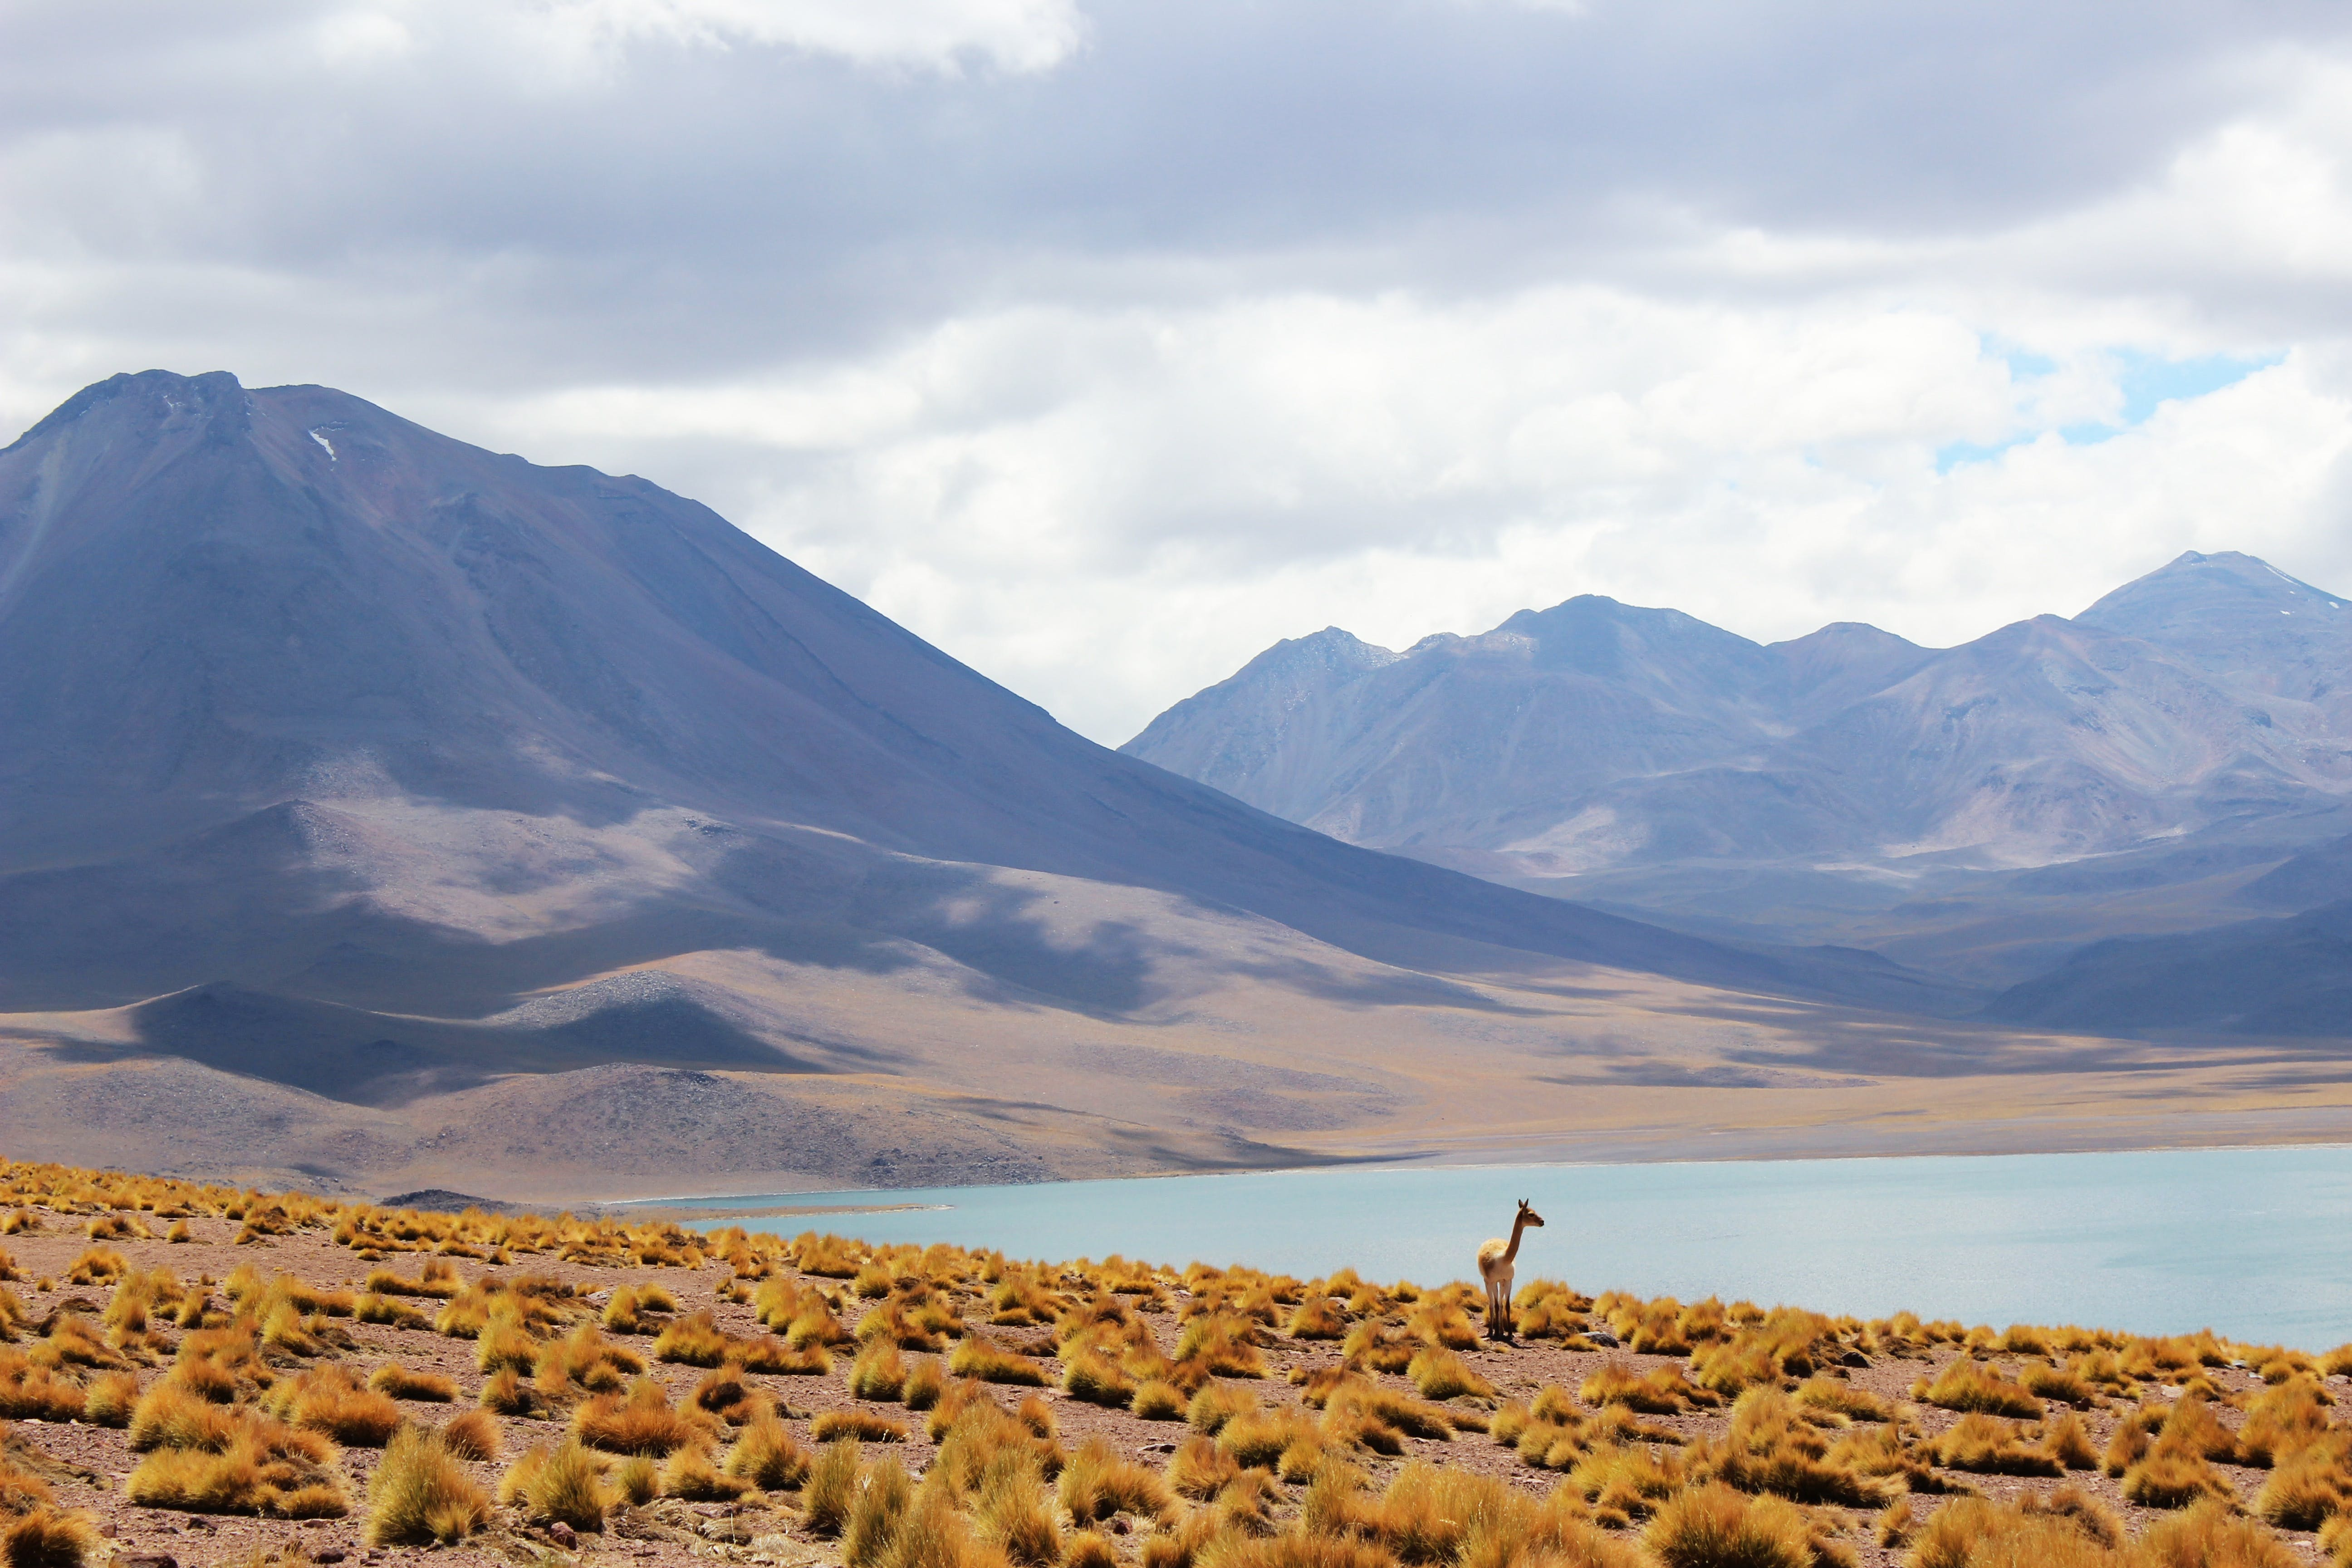 A small deer or antelope stands on a shrubby hillside in the Atacama Desert, next to a lake.